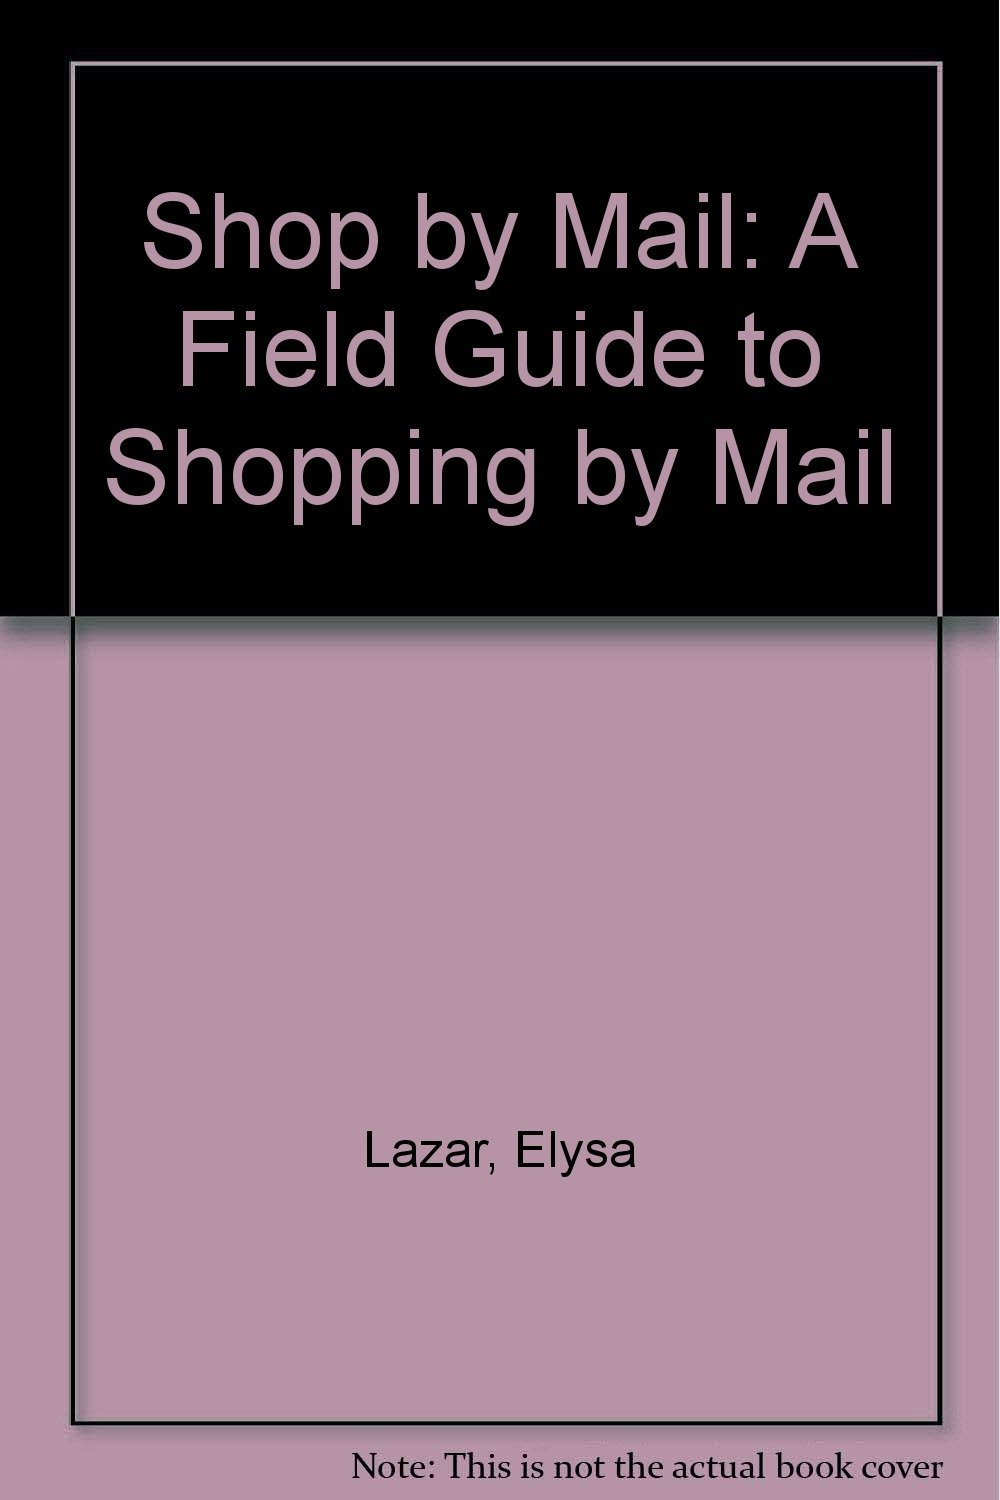 amazon shop by mail a field guide to shopping by mail elysa